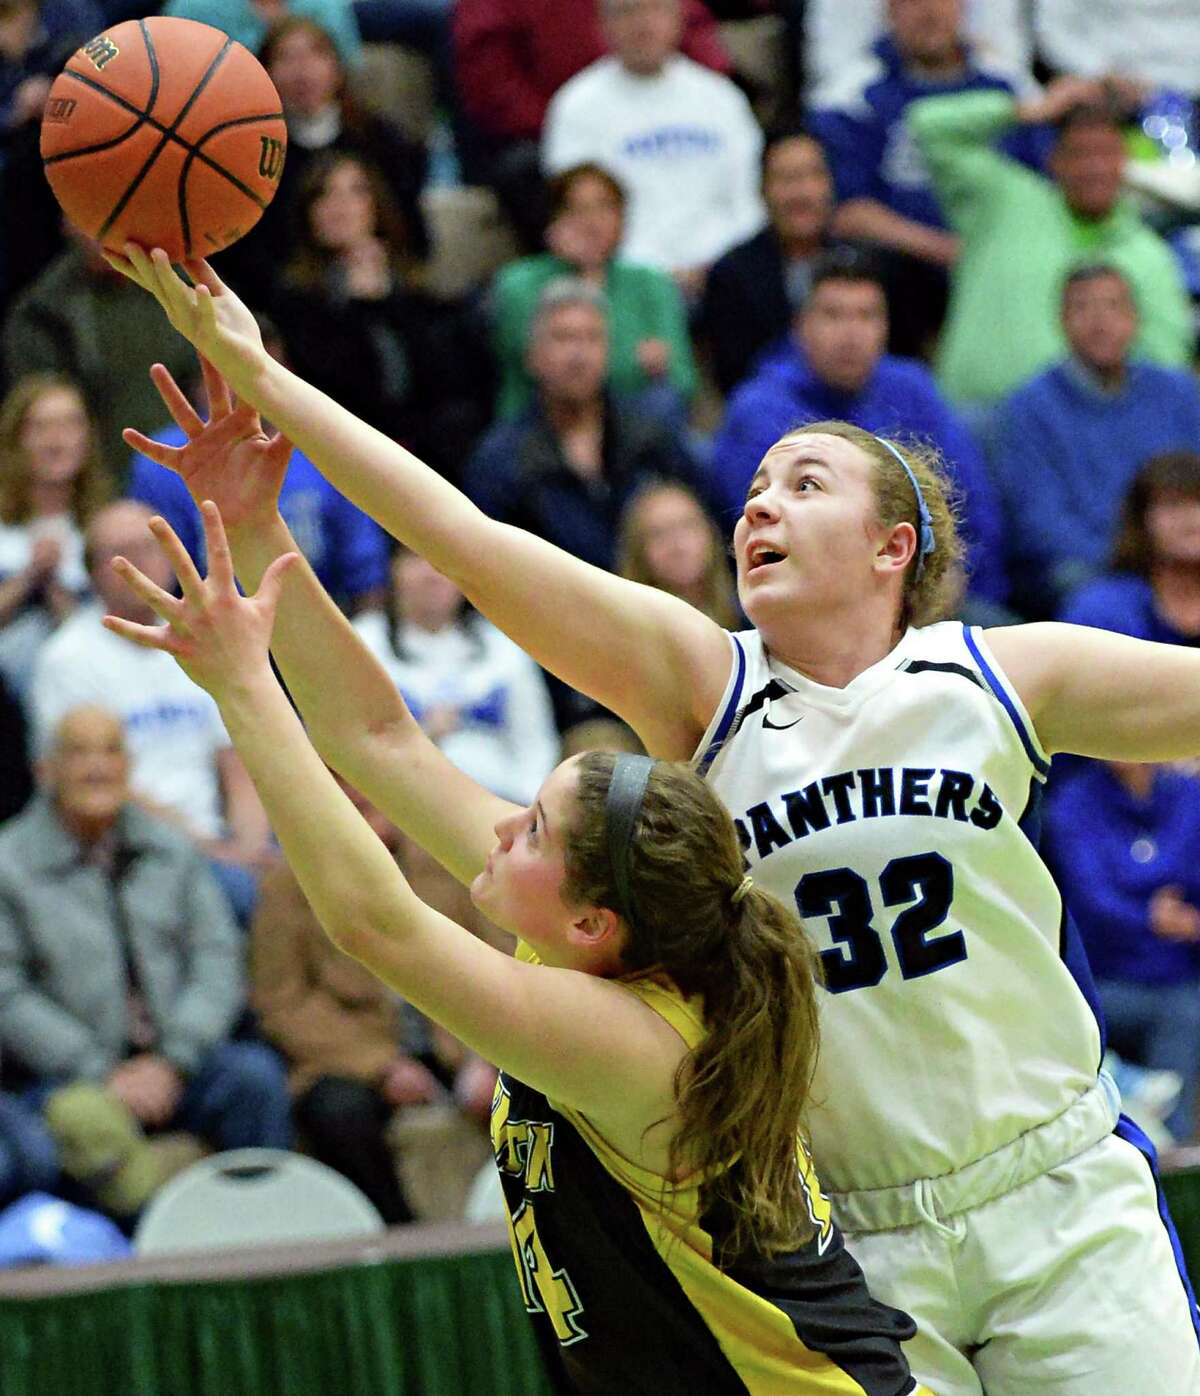 Hoosick Falls' Megan Flynn scored 12 points and had 16 rebounds in a 52-35 regional victory over Canton on Saturday. Read more.